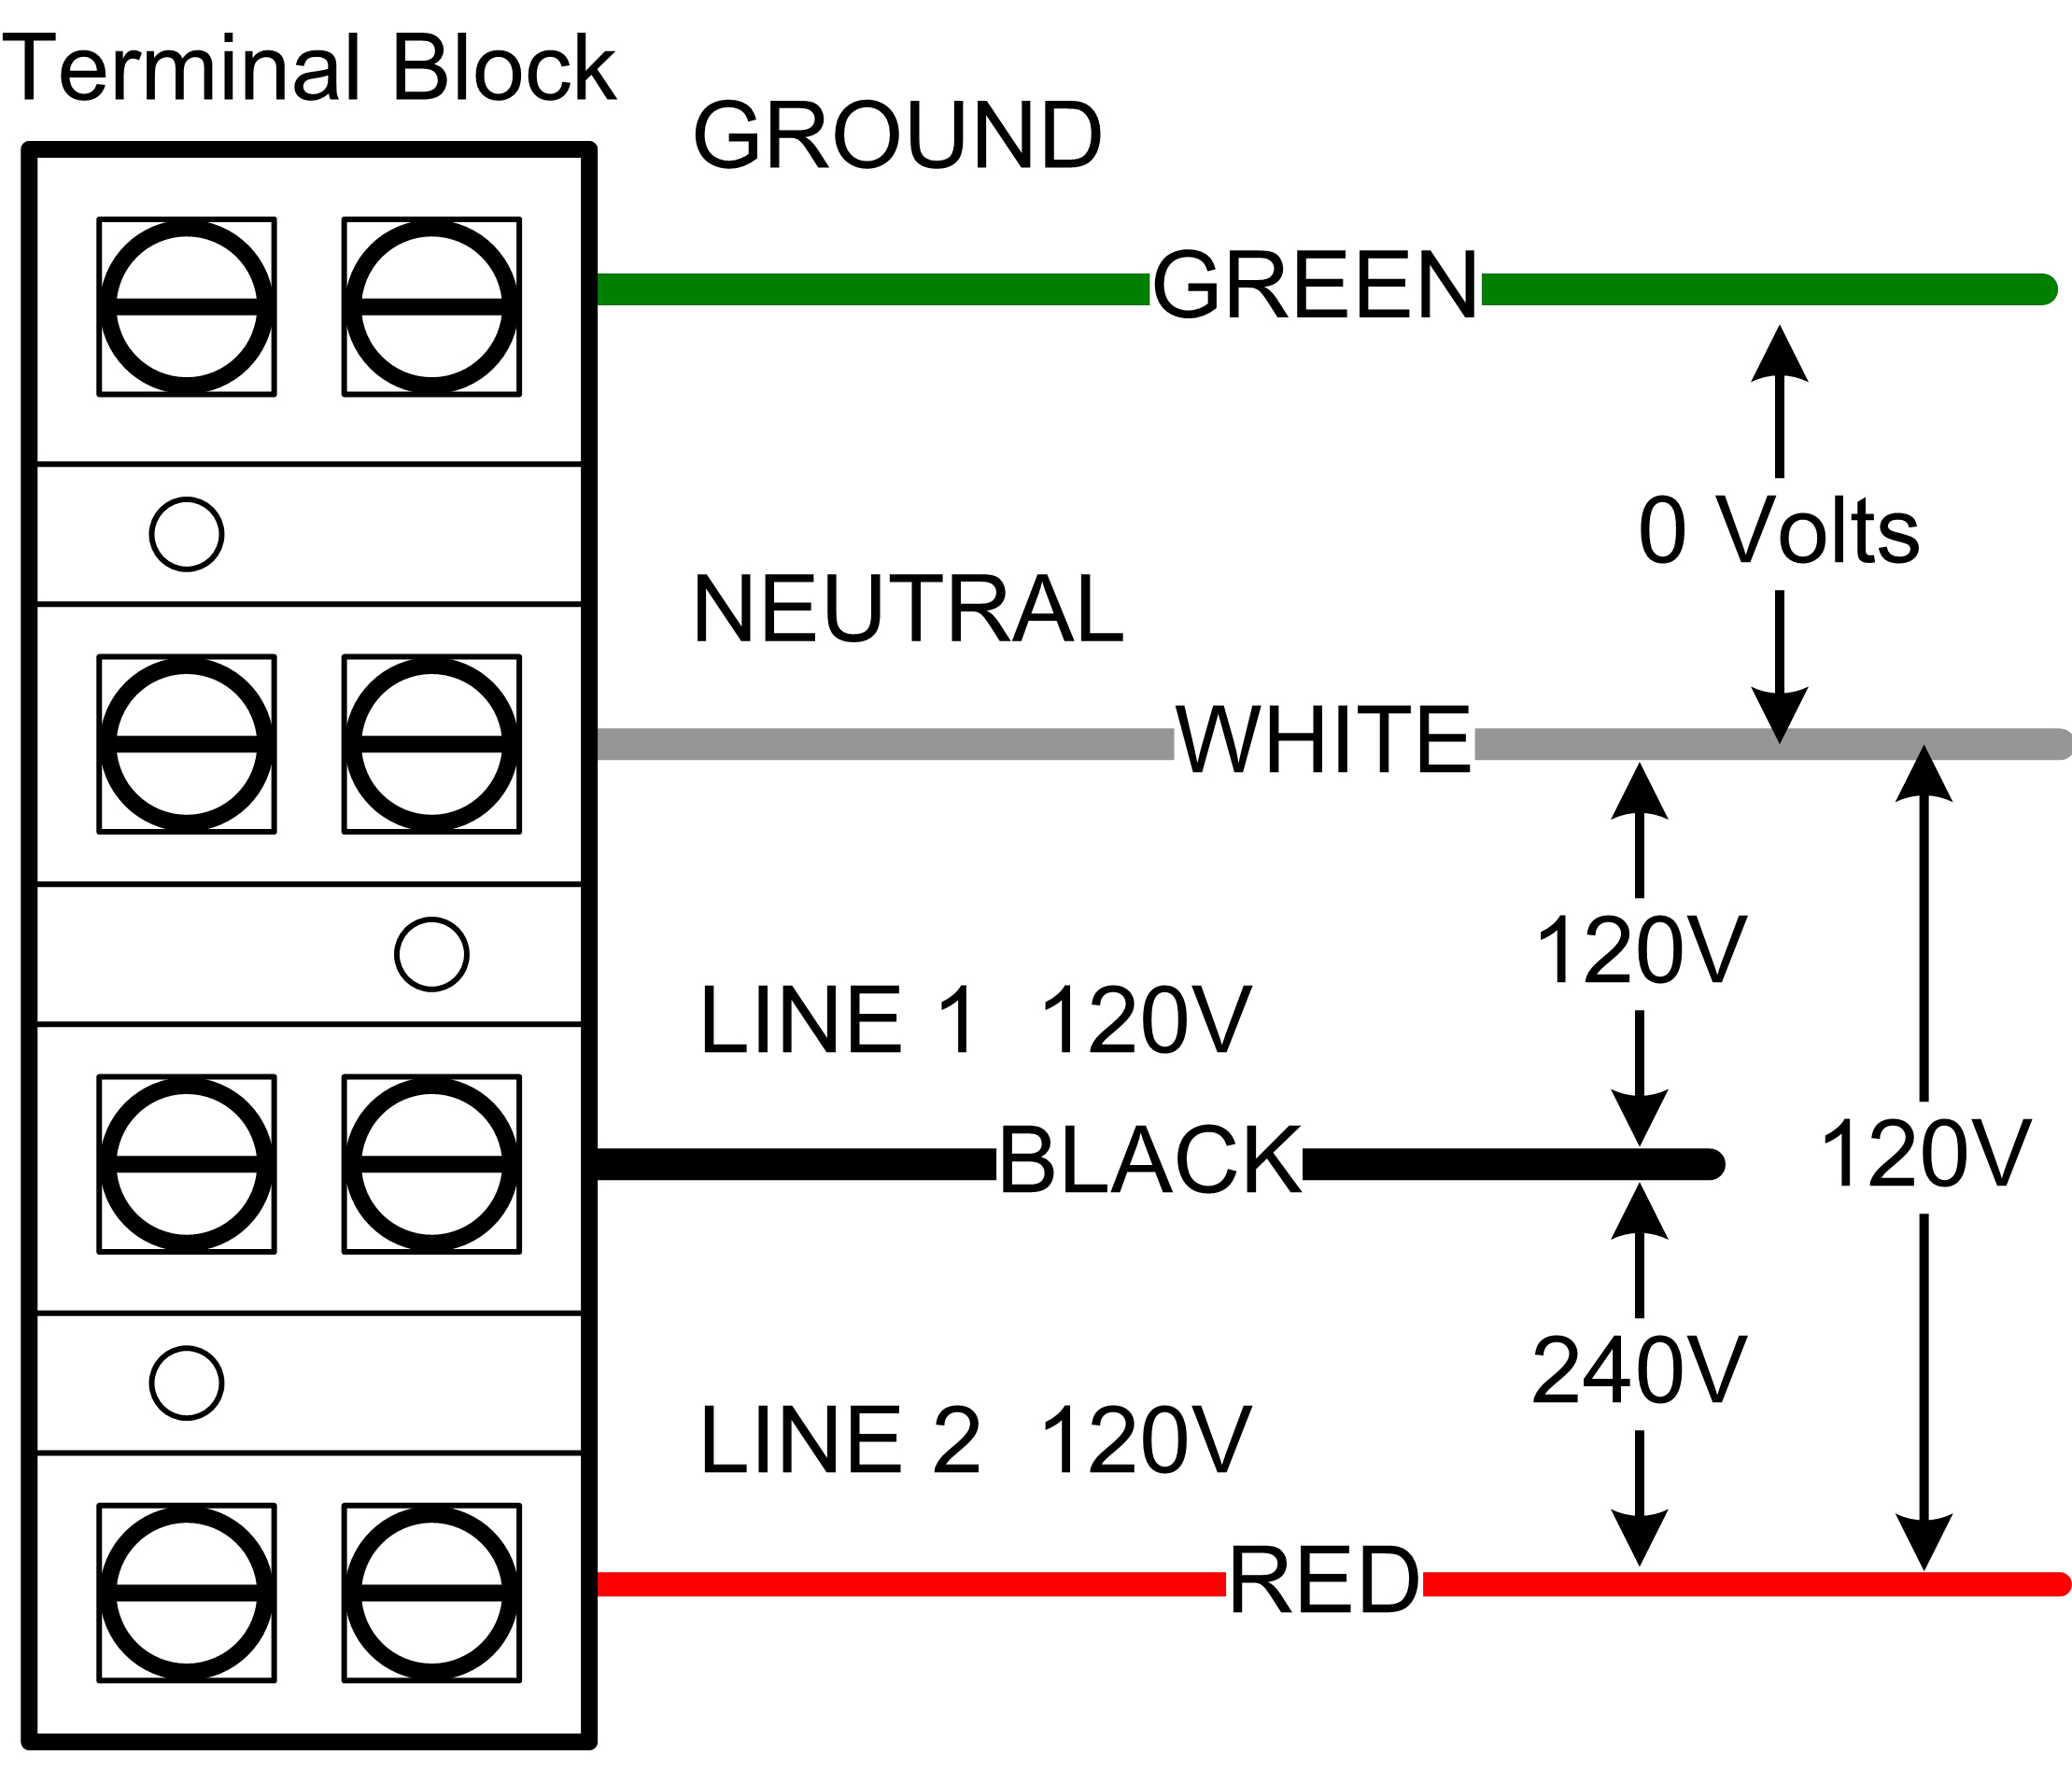 Pump 4 Wire Switch Diagram For Two | Wiring Diagram  Phase Wiring Diagrams on 3 phase motor connection diagram, 3 phase block diagram, 3 phase wire, 3 phase converter diagram, 3 phase electric panel diagrams, 3 phase plug, 3 phase transformers diagram, 3 phase electricity diagram, 3 phase connector diagram, 3 phase thermostat diagram, 3 phase generator diagram, 3 phase relay, 3 phase regulator, 3 phase cable, 3 phase circuit, ceiling fan installation diagram, 3 phase power, 3 phase coil diagram, 3 phase inverter diagram, 3 phase schematic diagrams,